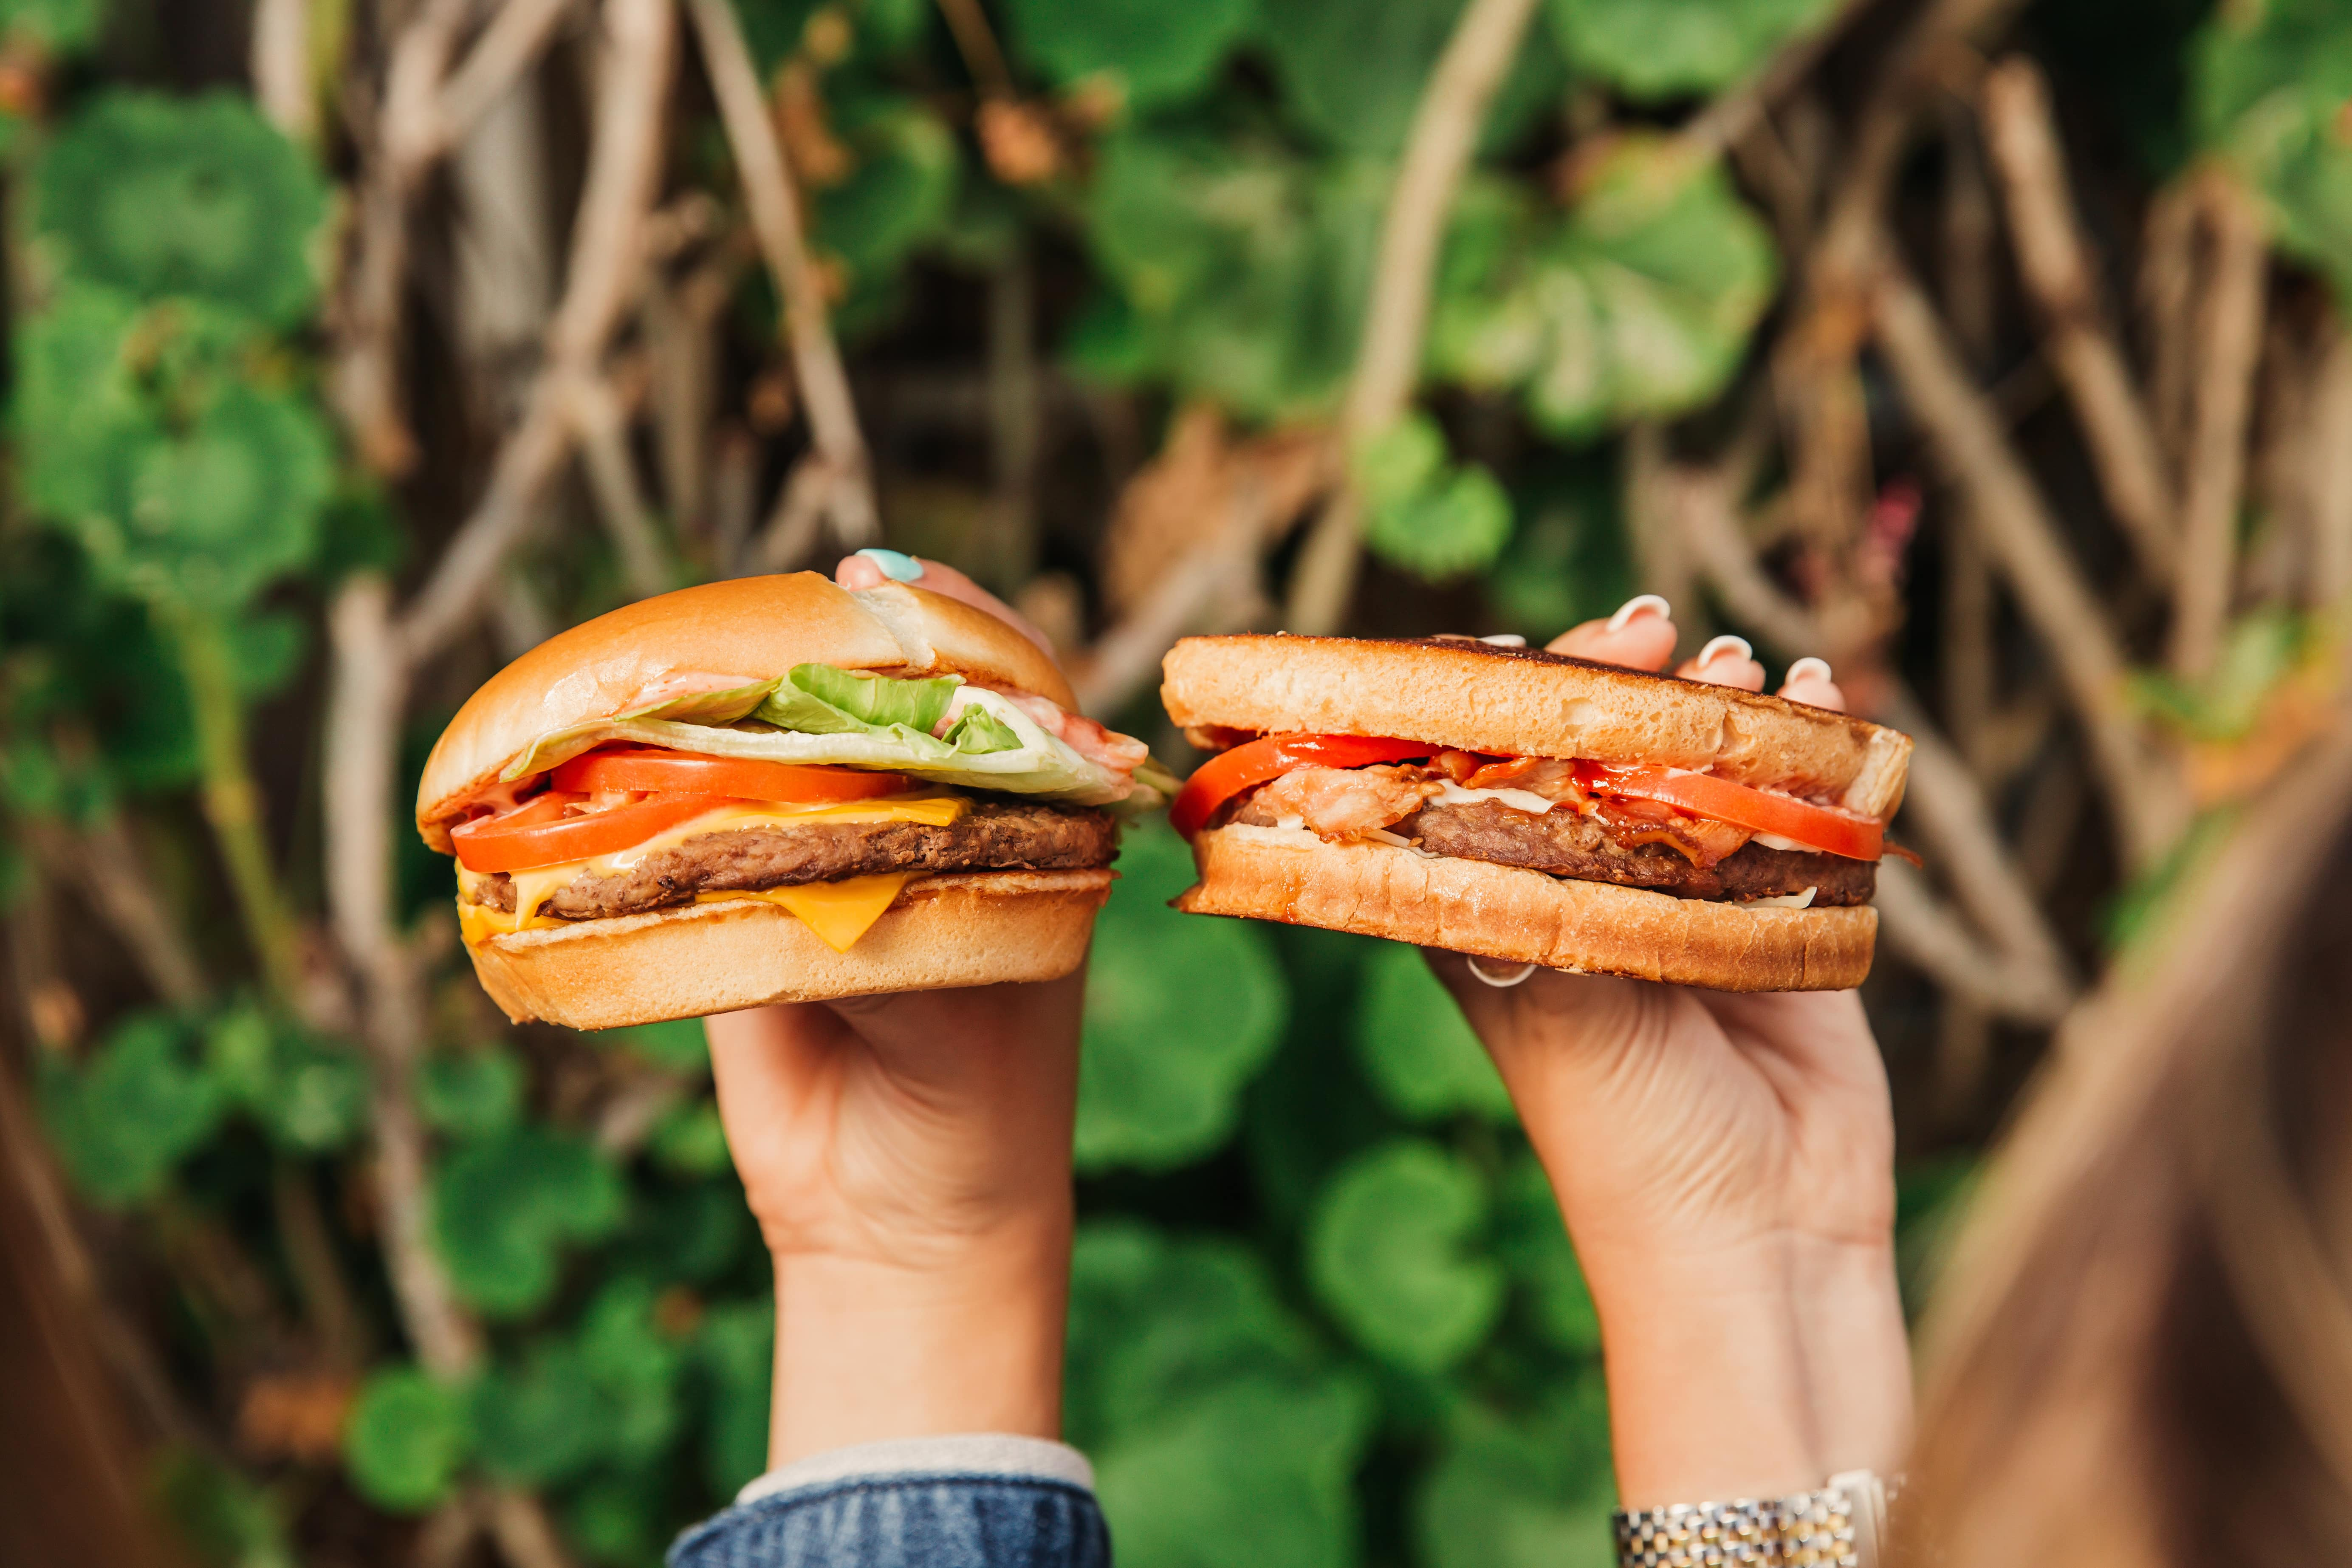 5 Key Differentiators That Make Jack in the Box a Top 5 Burger Franchise